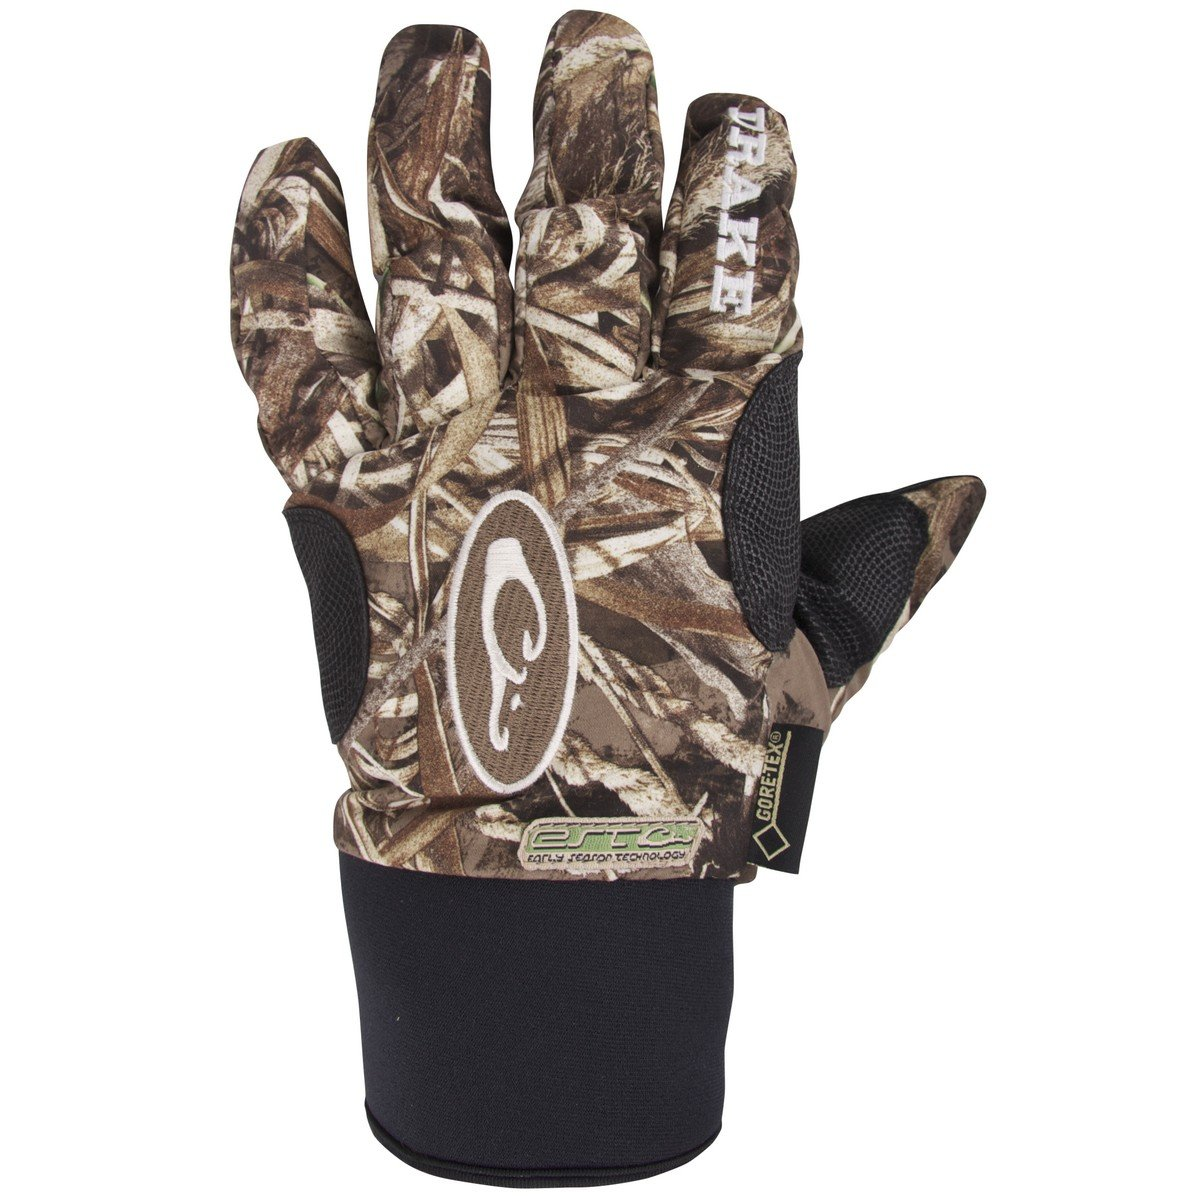 Drake EST Refuge Gore-Tex Glove Medium Realtree Max-5 by Drake